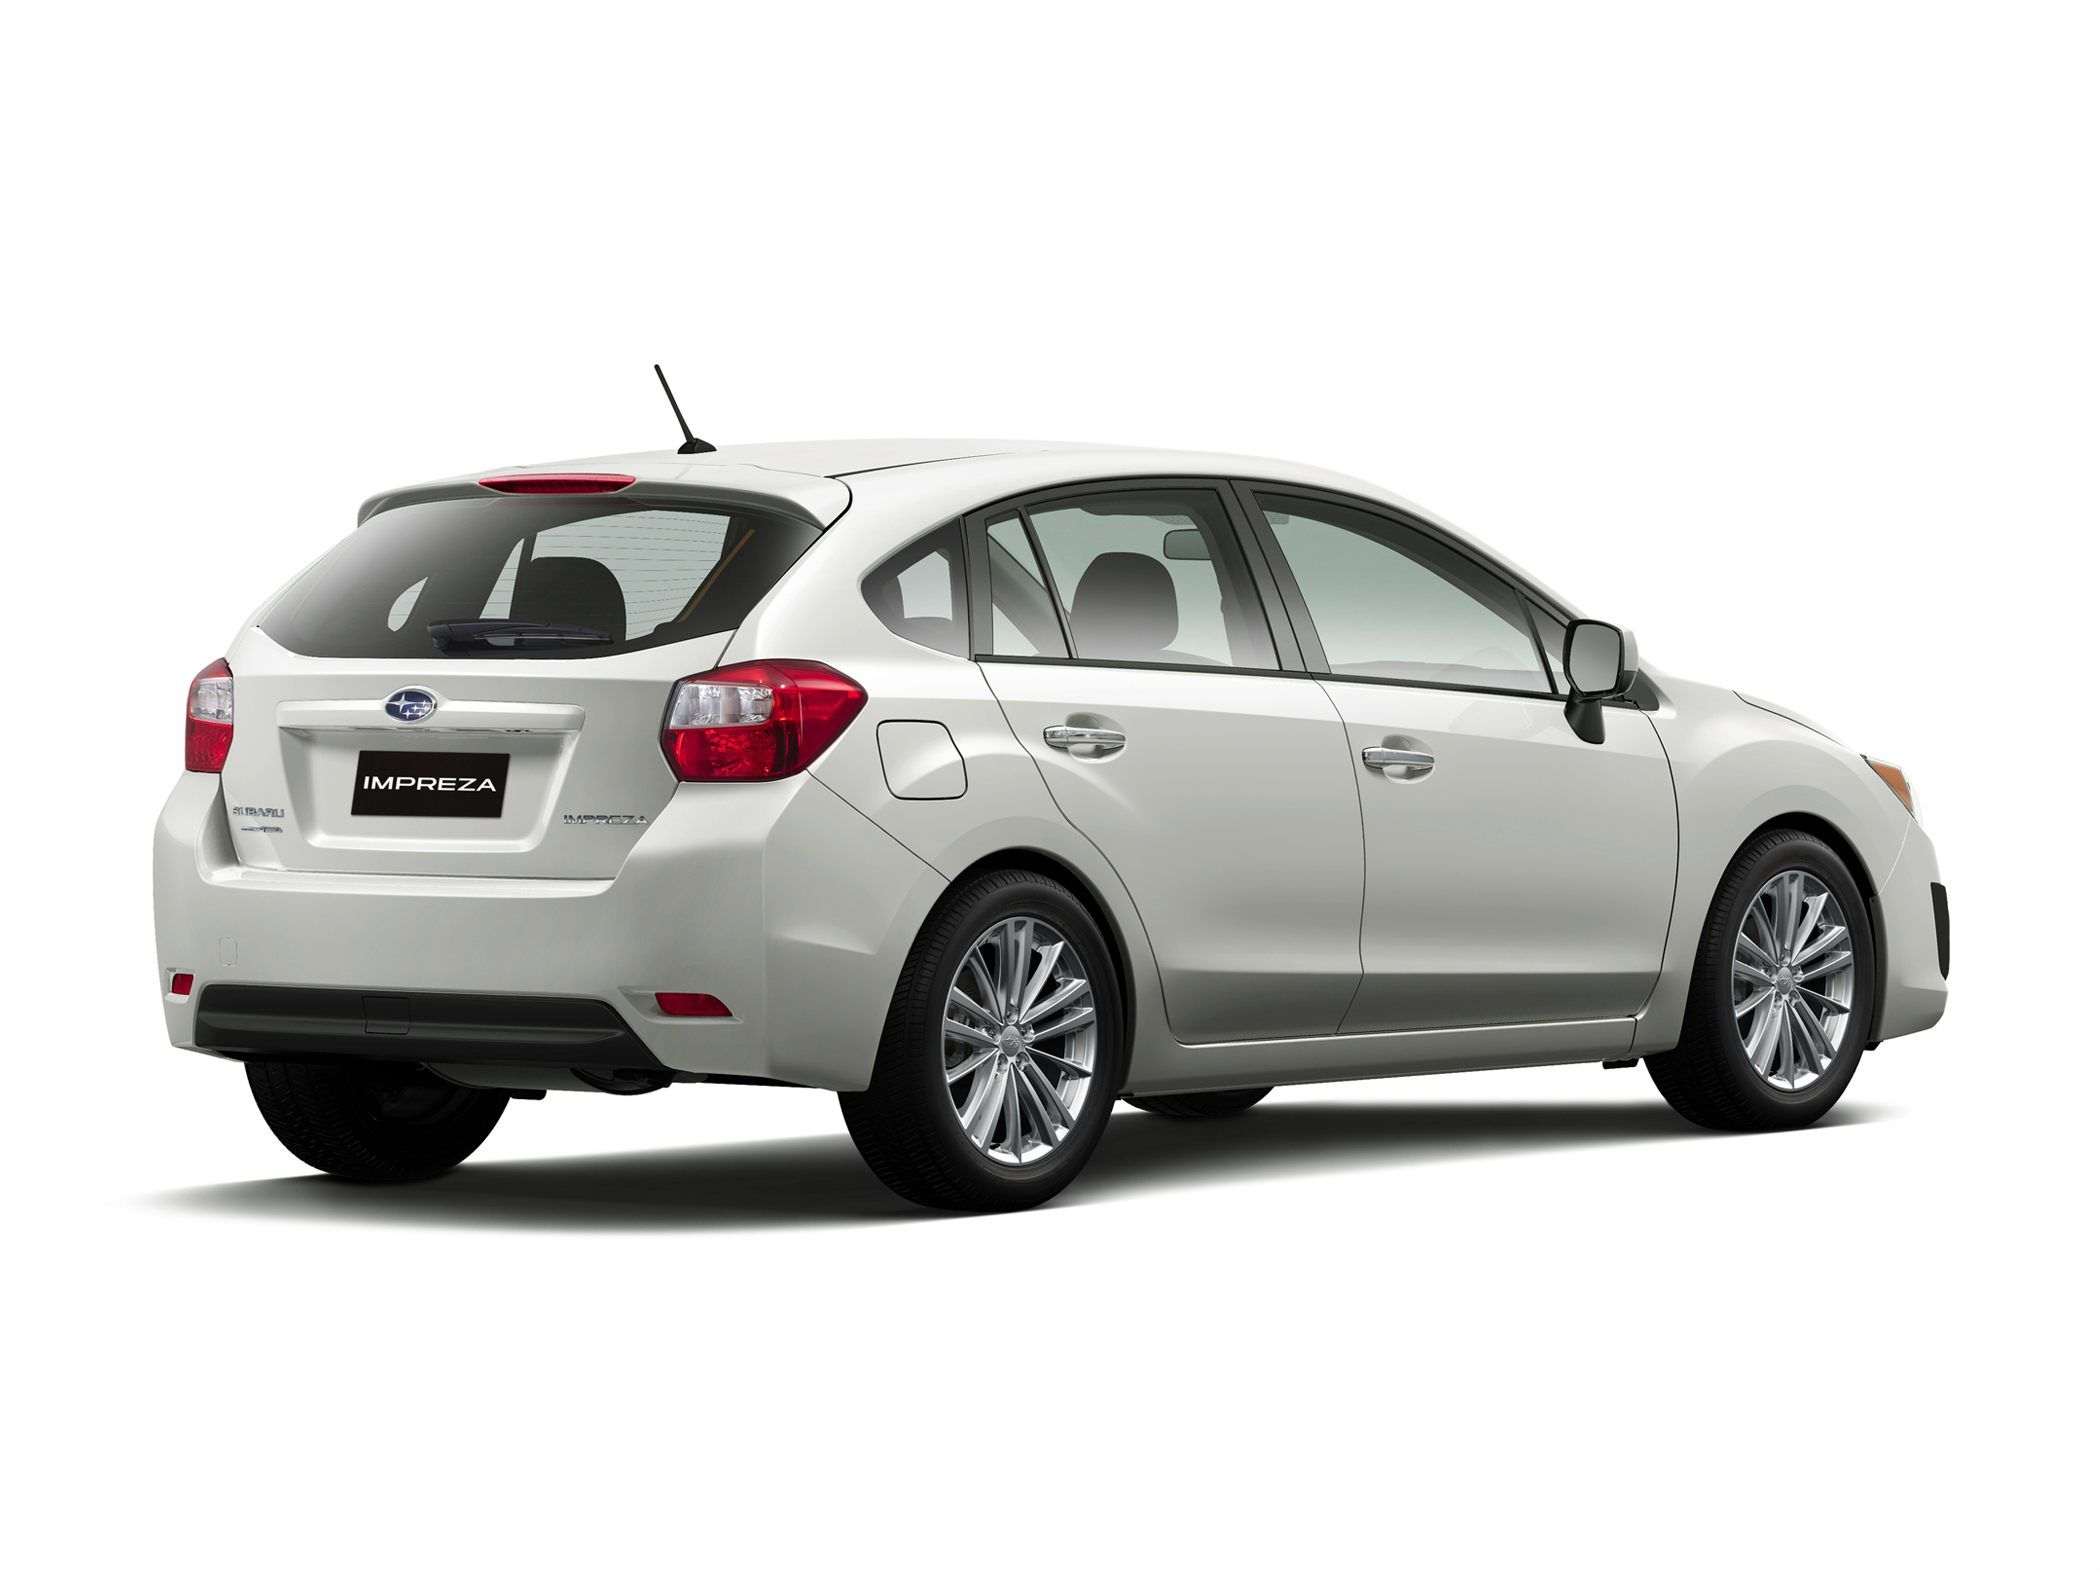 Etonnant Subaru Impreza Hatchback 2013   Google Search